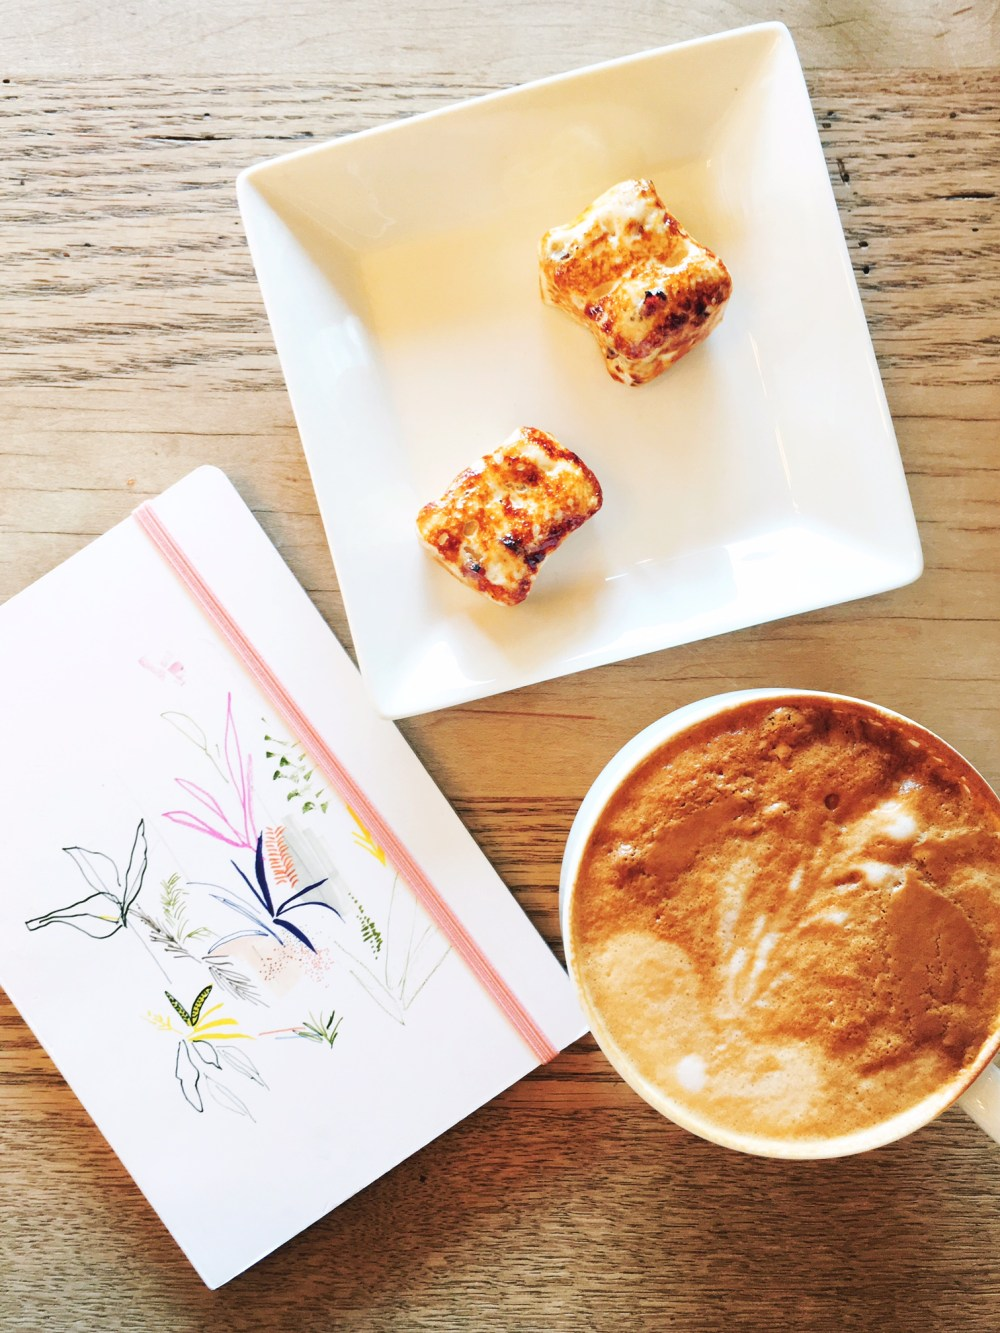 Latte, Maple Bacon Marshmallows, and my Bullet Journal